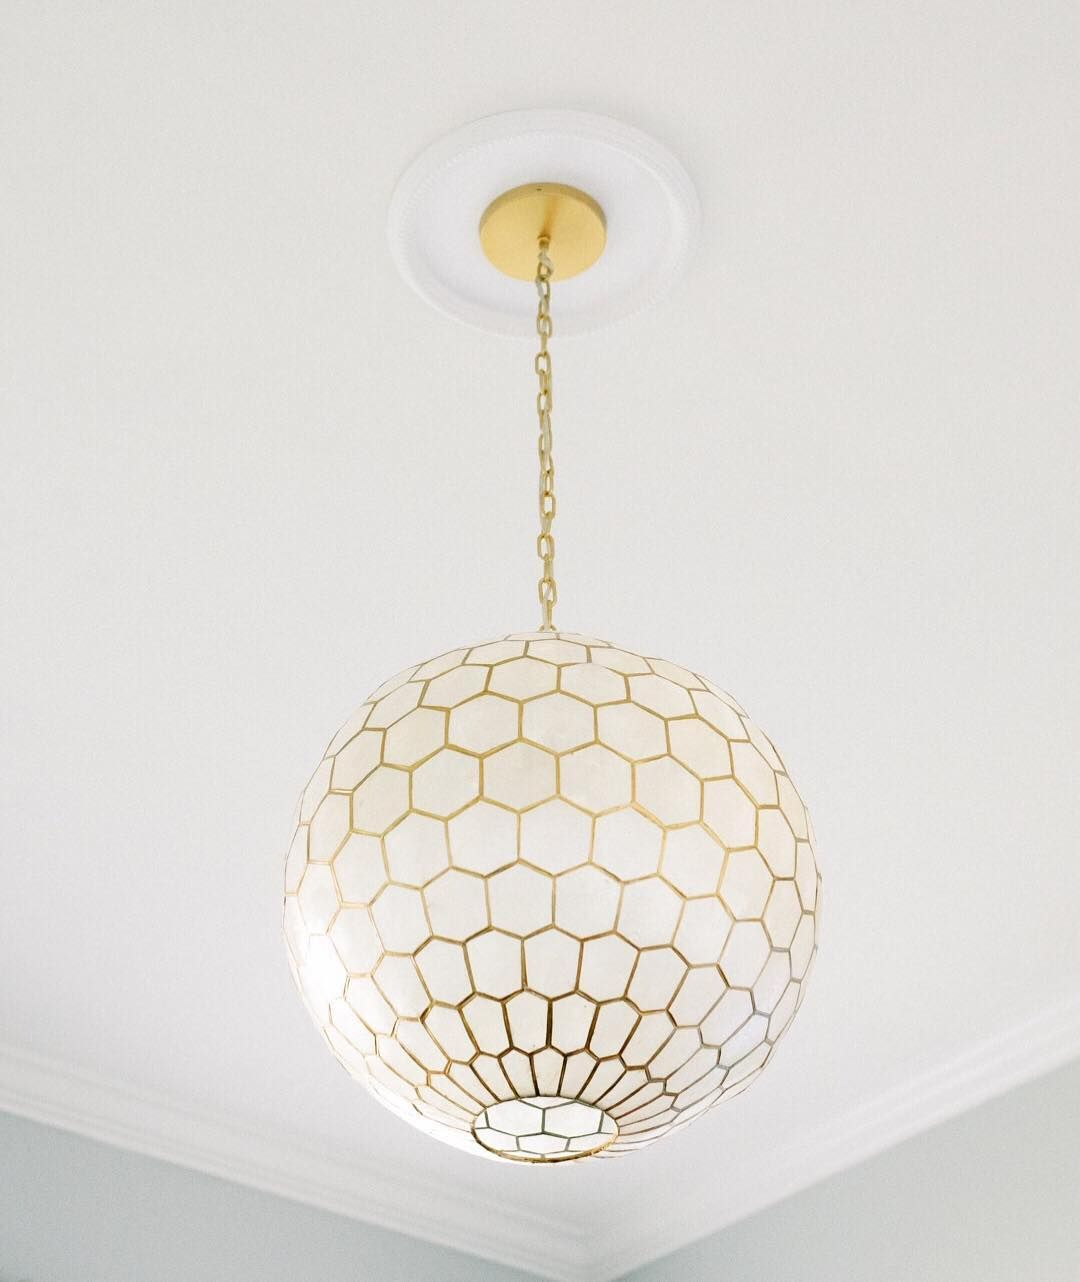 "When we started fixing up our living room, I searched and searched and searched for a light fixture. Lusted after this one but was determined not to break the bank. Months later my husband informed me that lights and bath fixtures are both expensive and it wasn't ""actually that bad."" So I ordered the light fixture and now I have an out for my expensive taste in patinaed brass shower heads and knobs. Give me an inch, you guys."